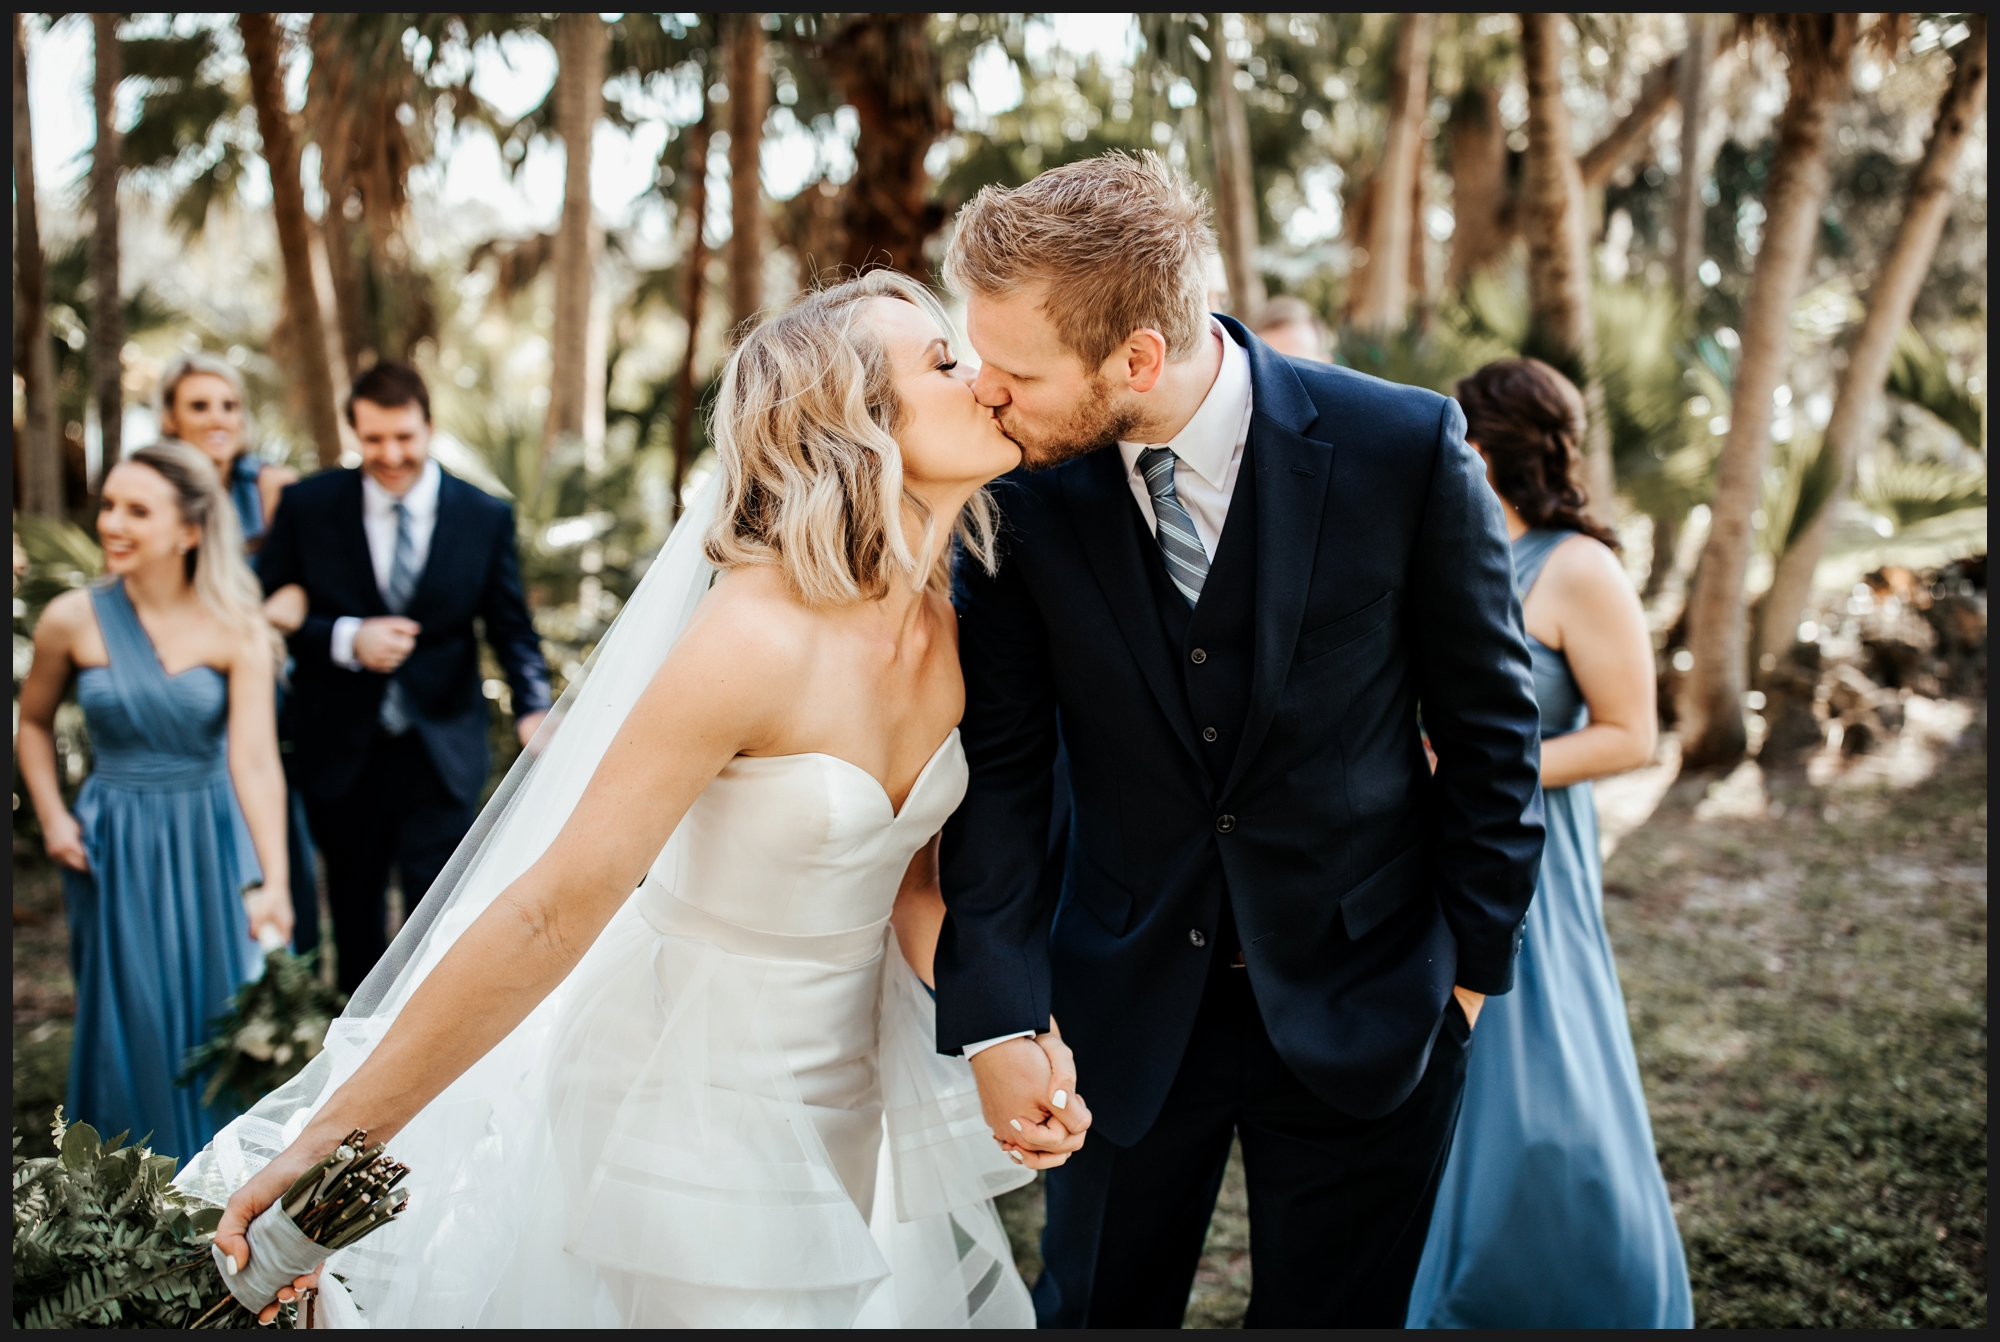 Orlando-Wedding-Photographer-destination-wedding-photographer-florida-wedding-photographer-bohemian-wedding-photographer_1508.jpg